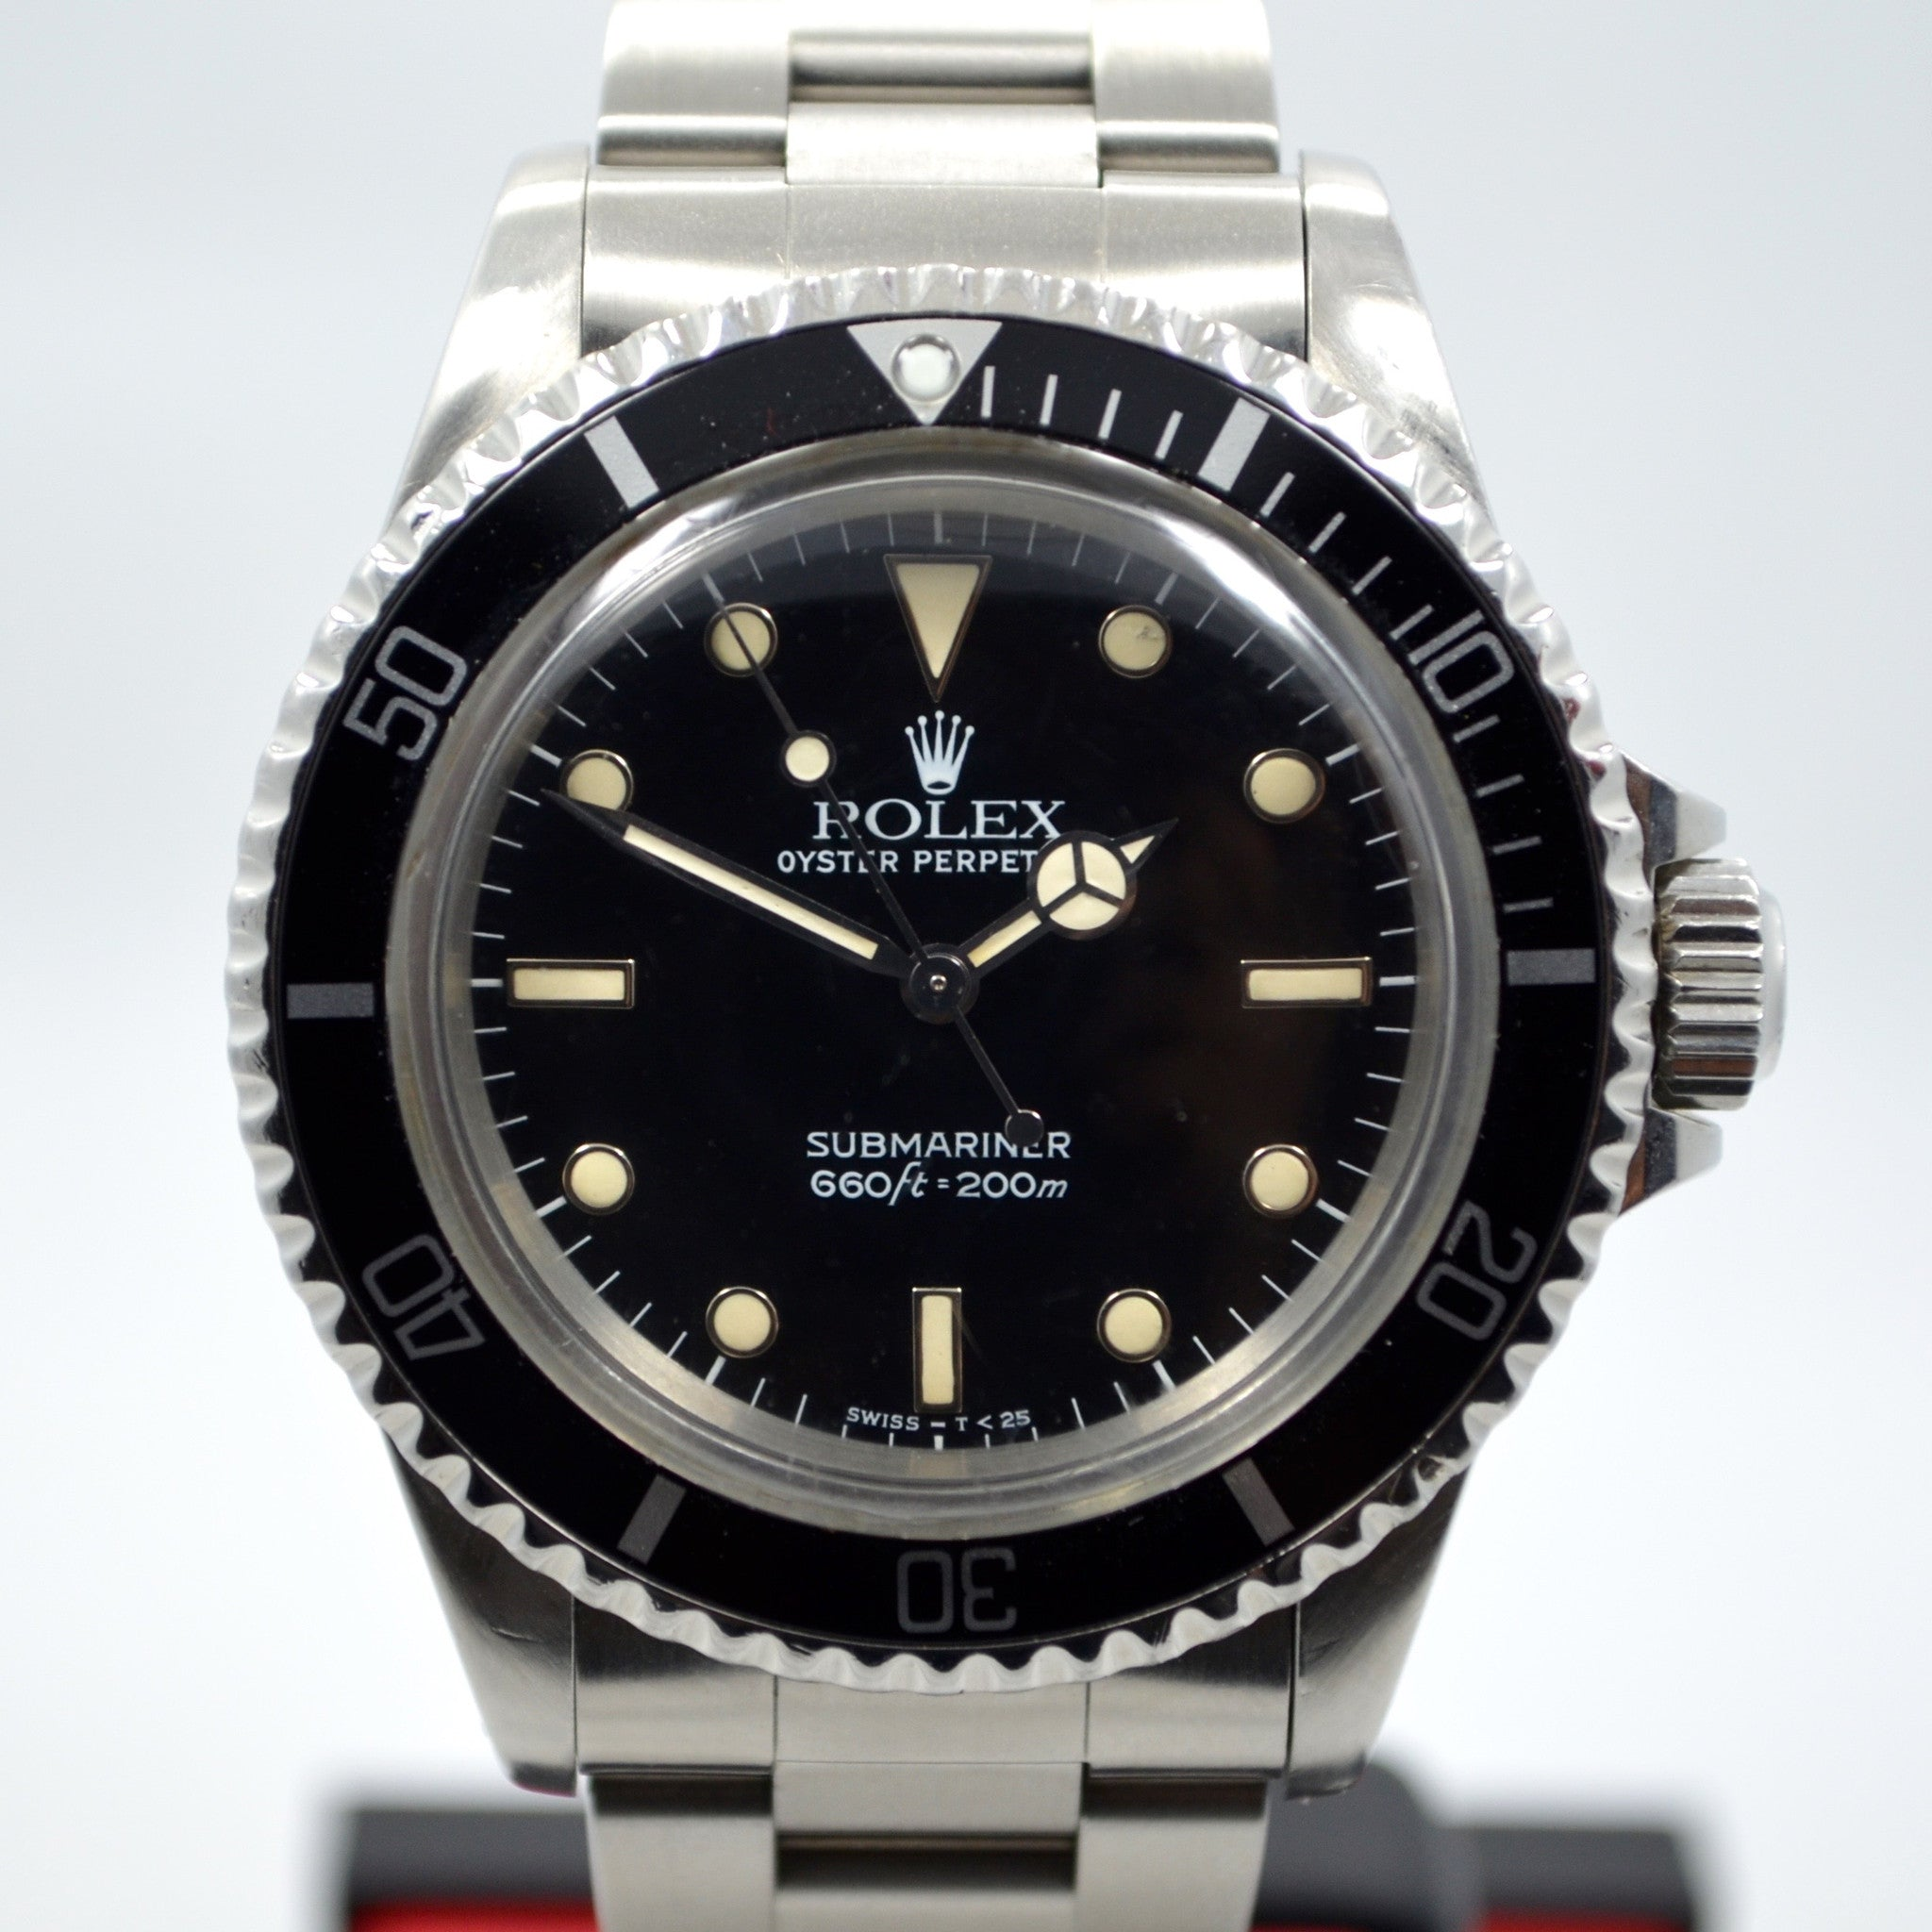 Vintage Rolex 5513 Submariner Stainless Steel 9.4 Mil Wristwatch 1986 Box Papers - Hashtag Watch Company